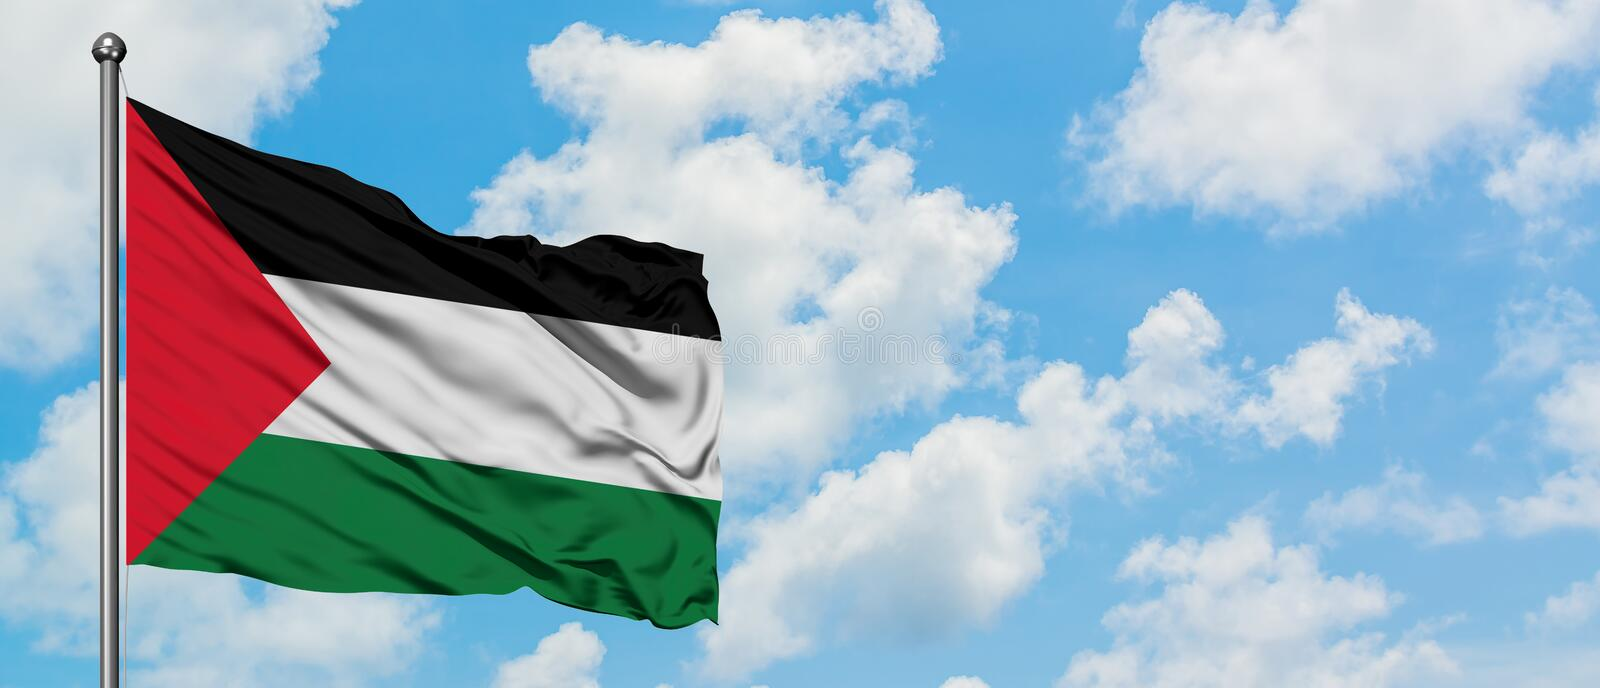 Palestine flag waving in the wind against white cloudy blue sky. Diplomacy concept, international relations.  stock photo